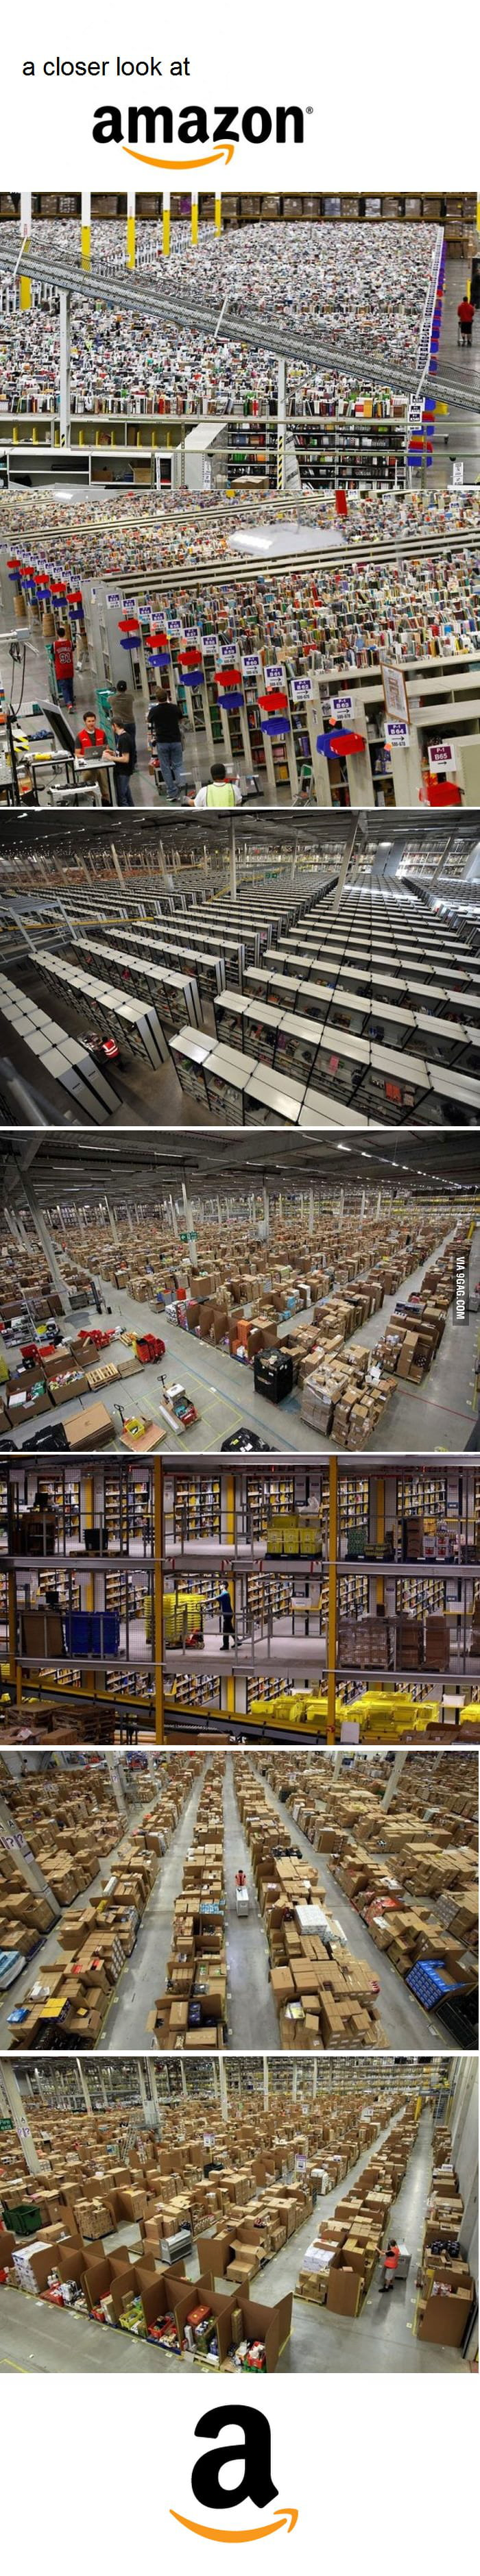 Amazon from inside...amazing